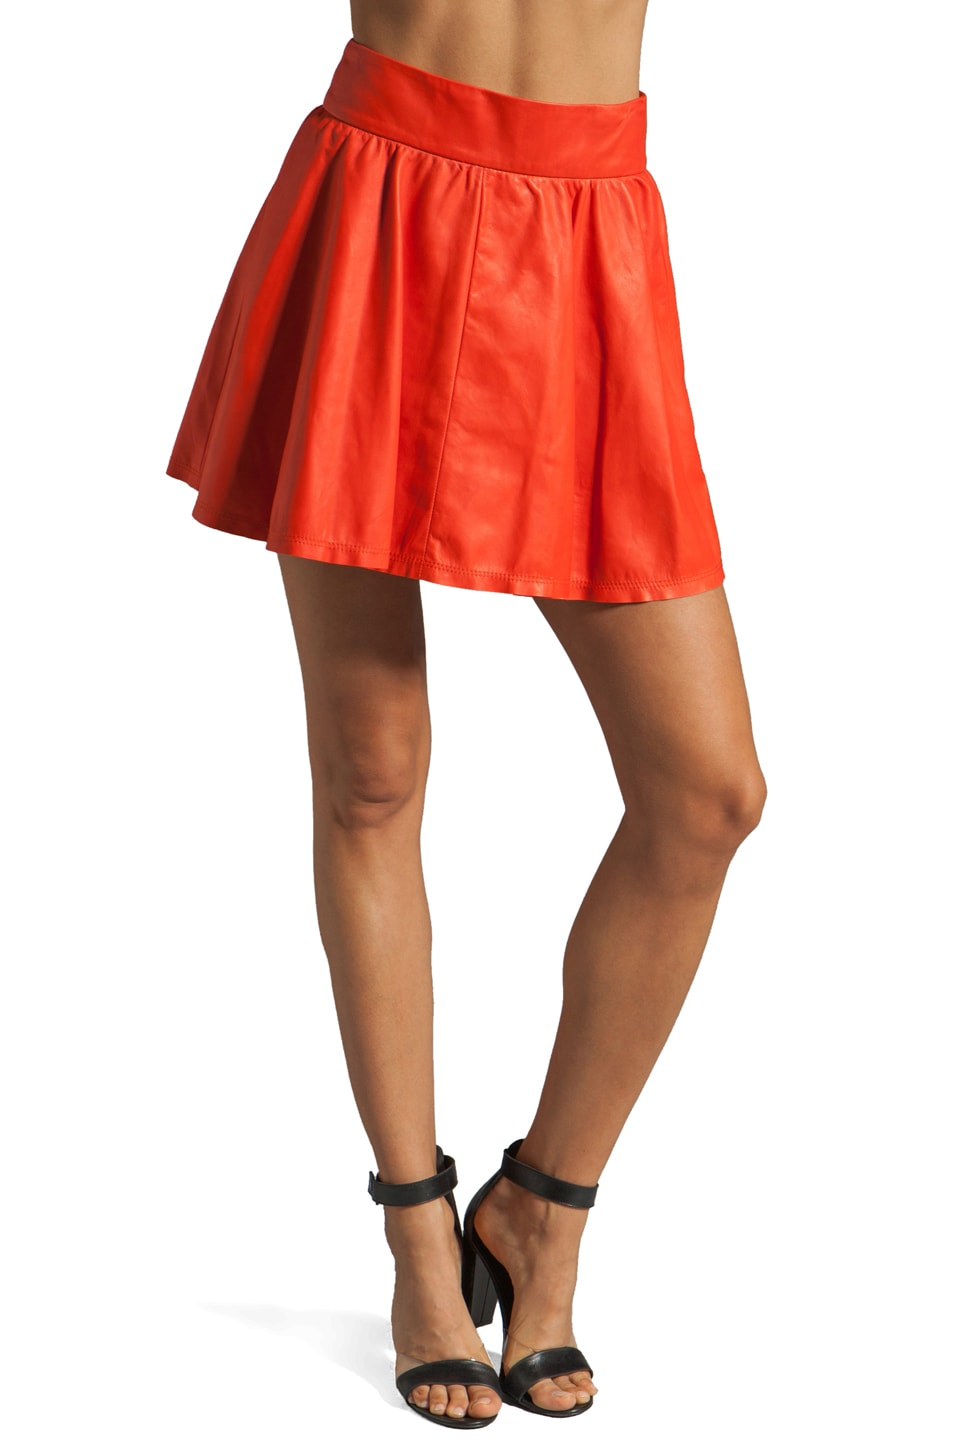 Alice + Olivia Luann Leather Wide Waistband Flare Skirt in Papaya